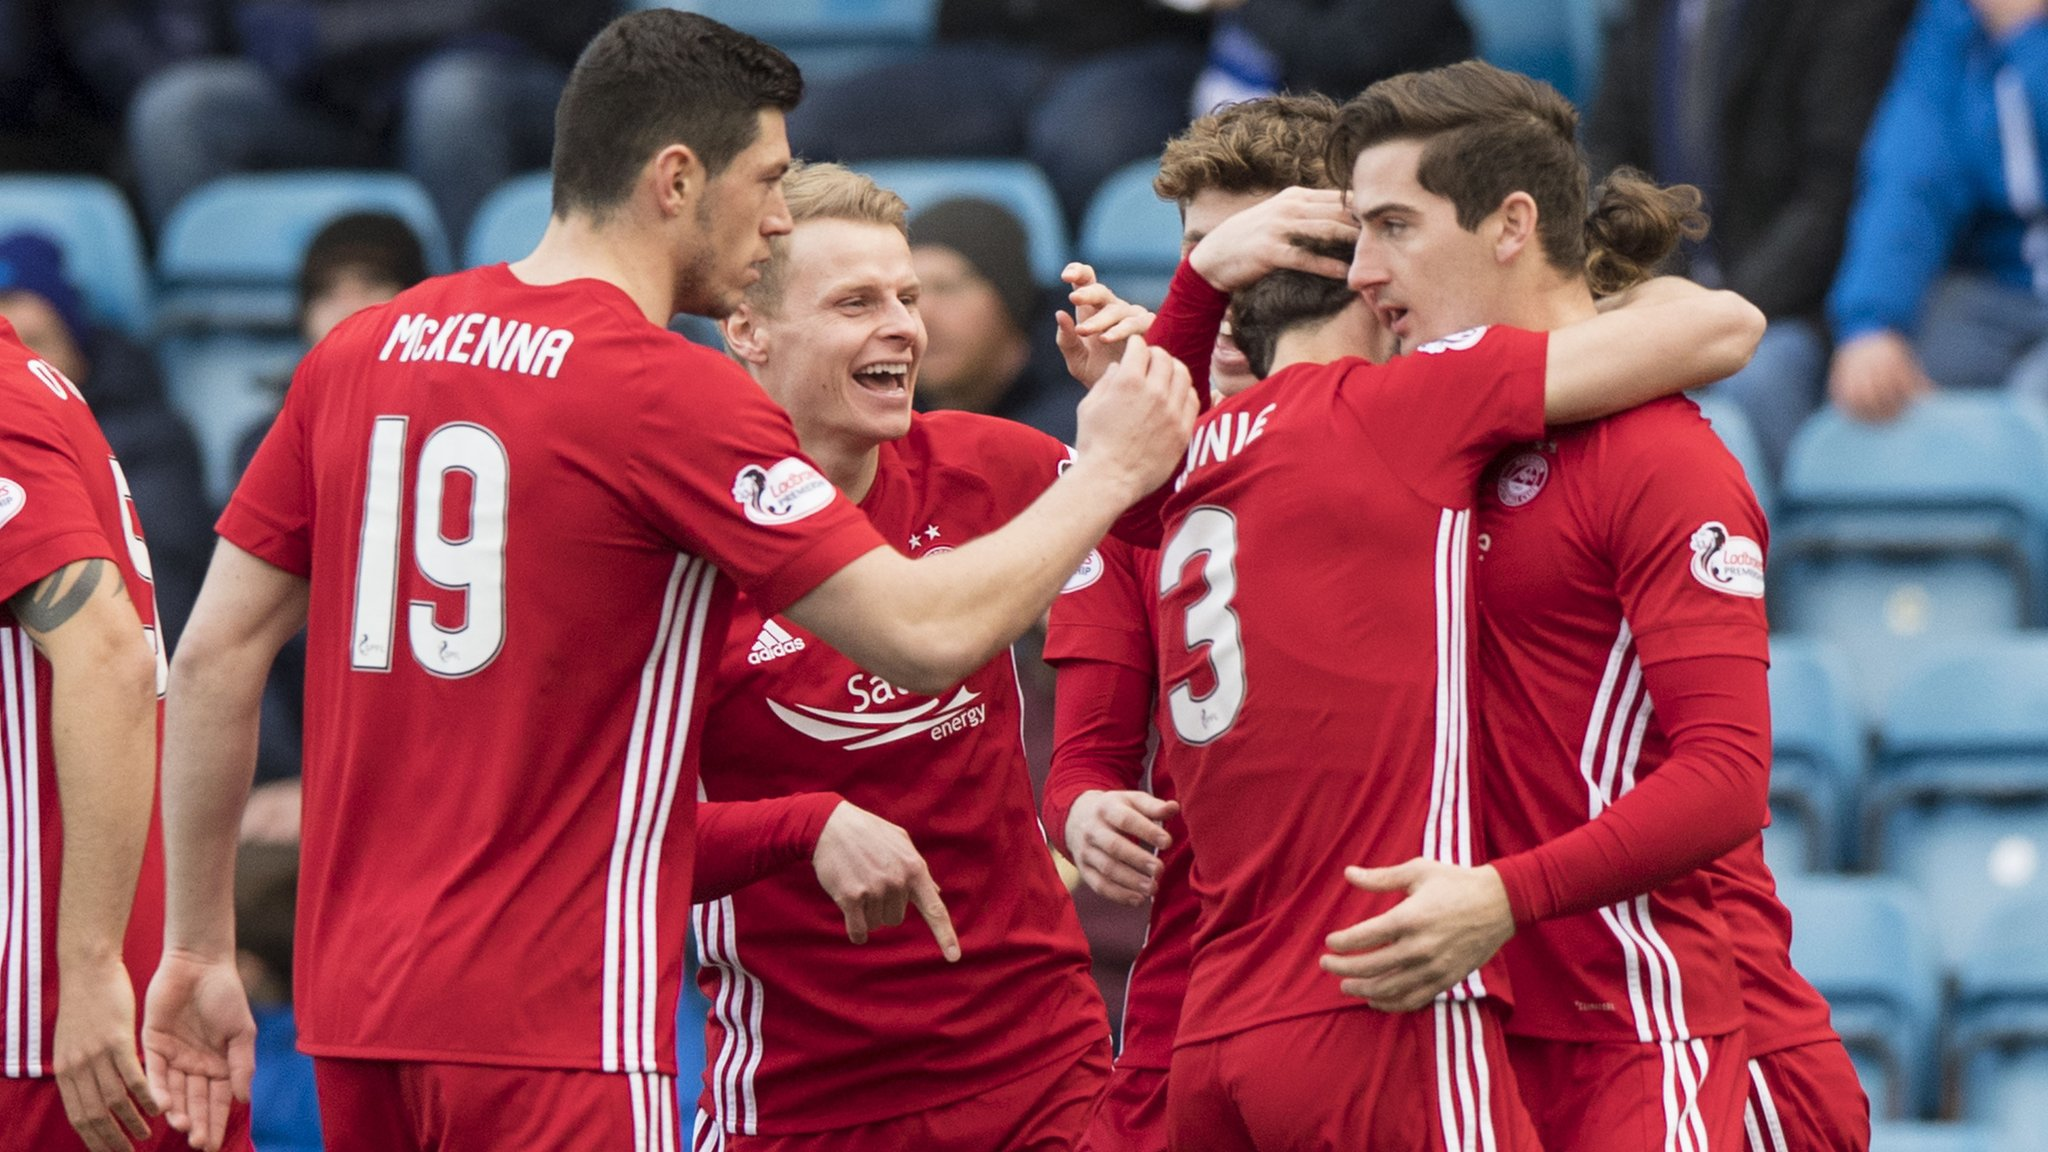 Aberdeen win narrows gap to leaders Celtic